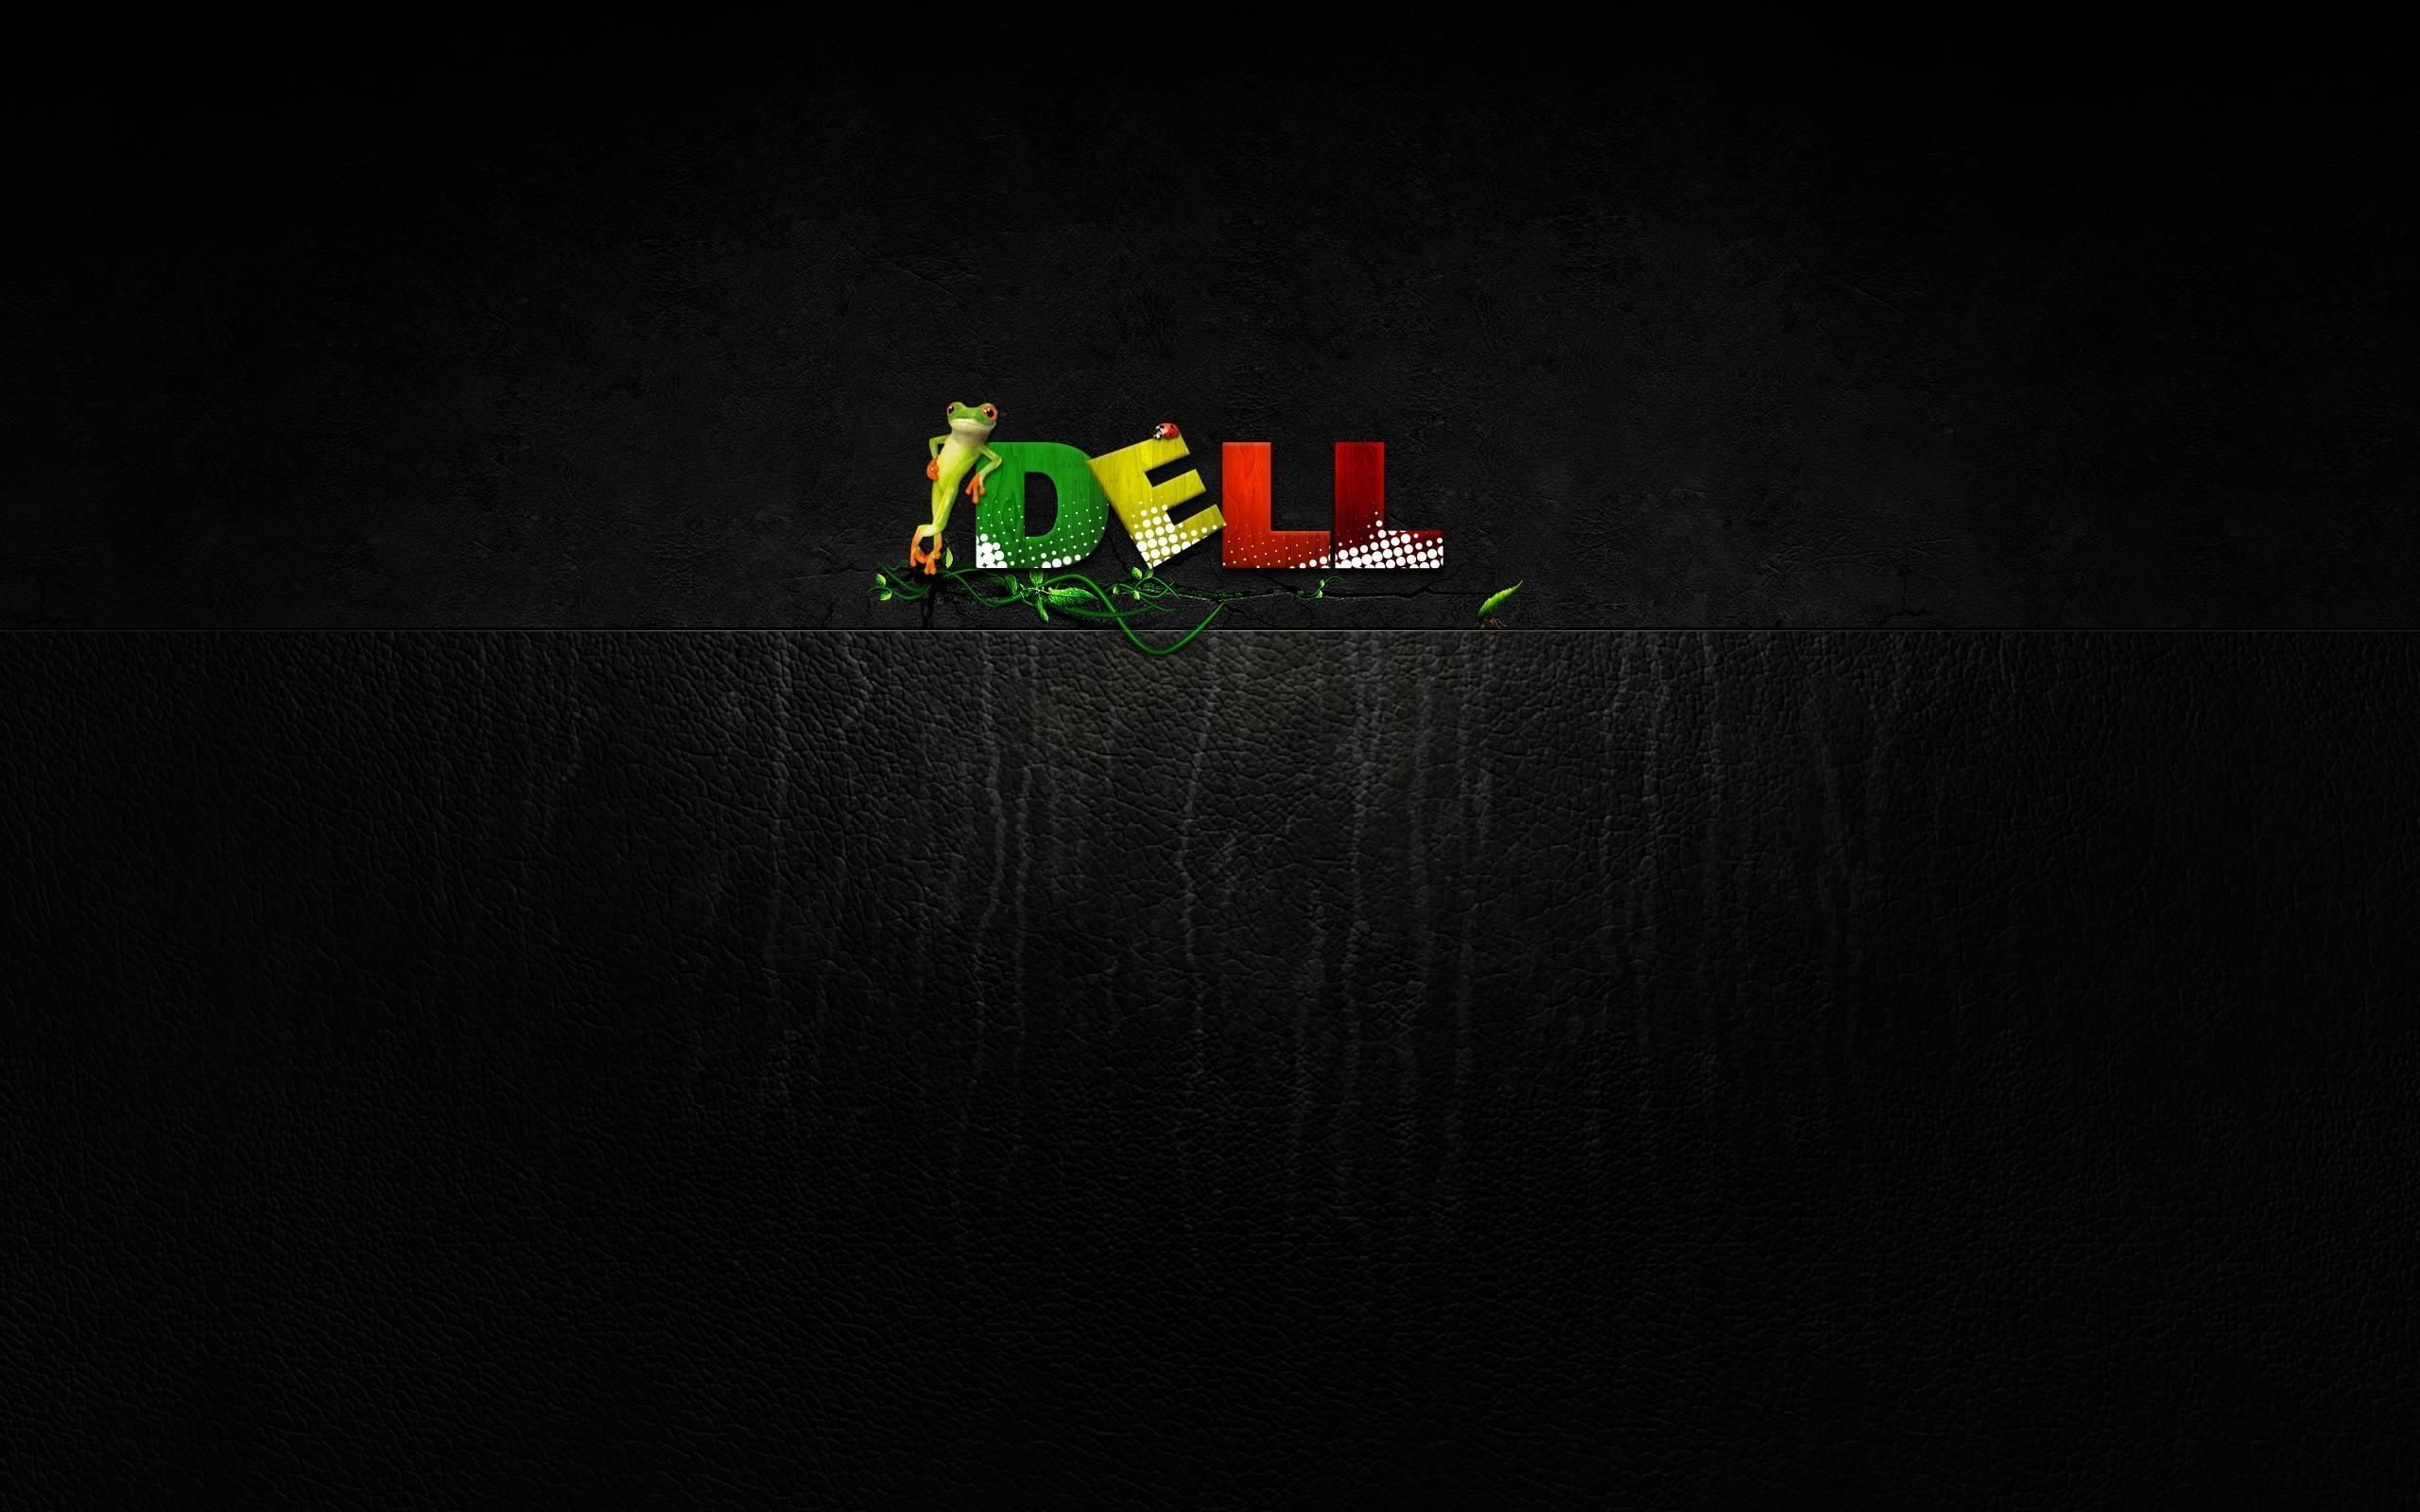 Dell Pc Wallpapers Dell Wallpapers Best Desktop Backgrounds ...